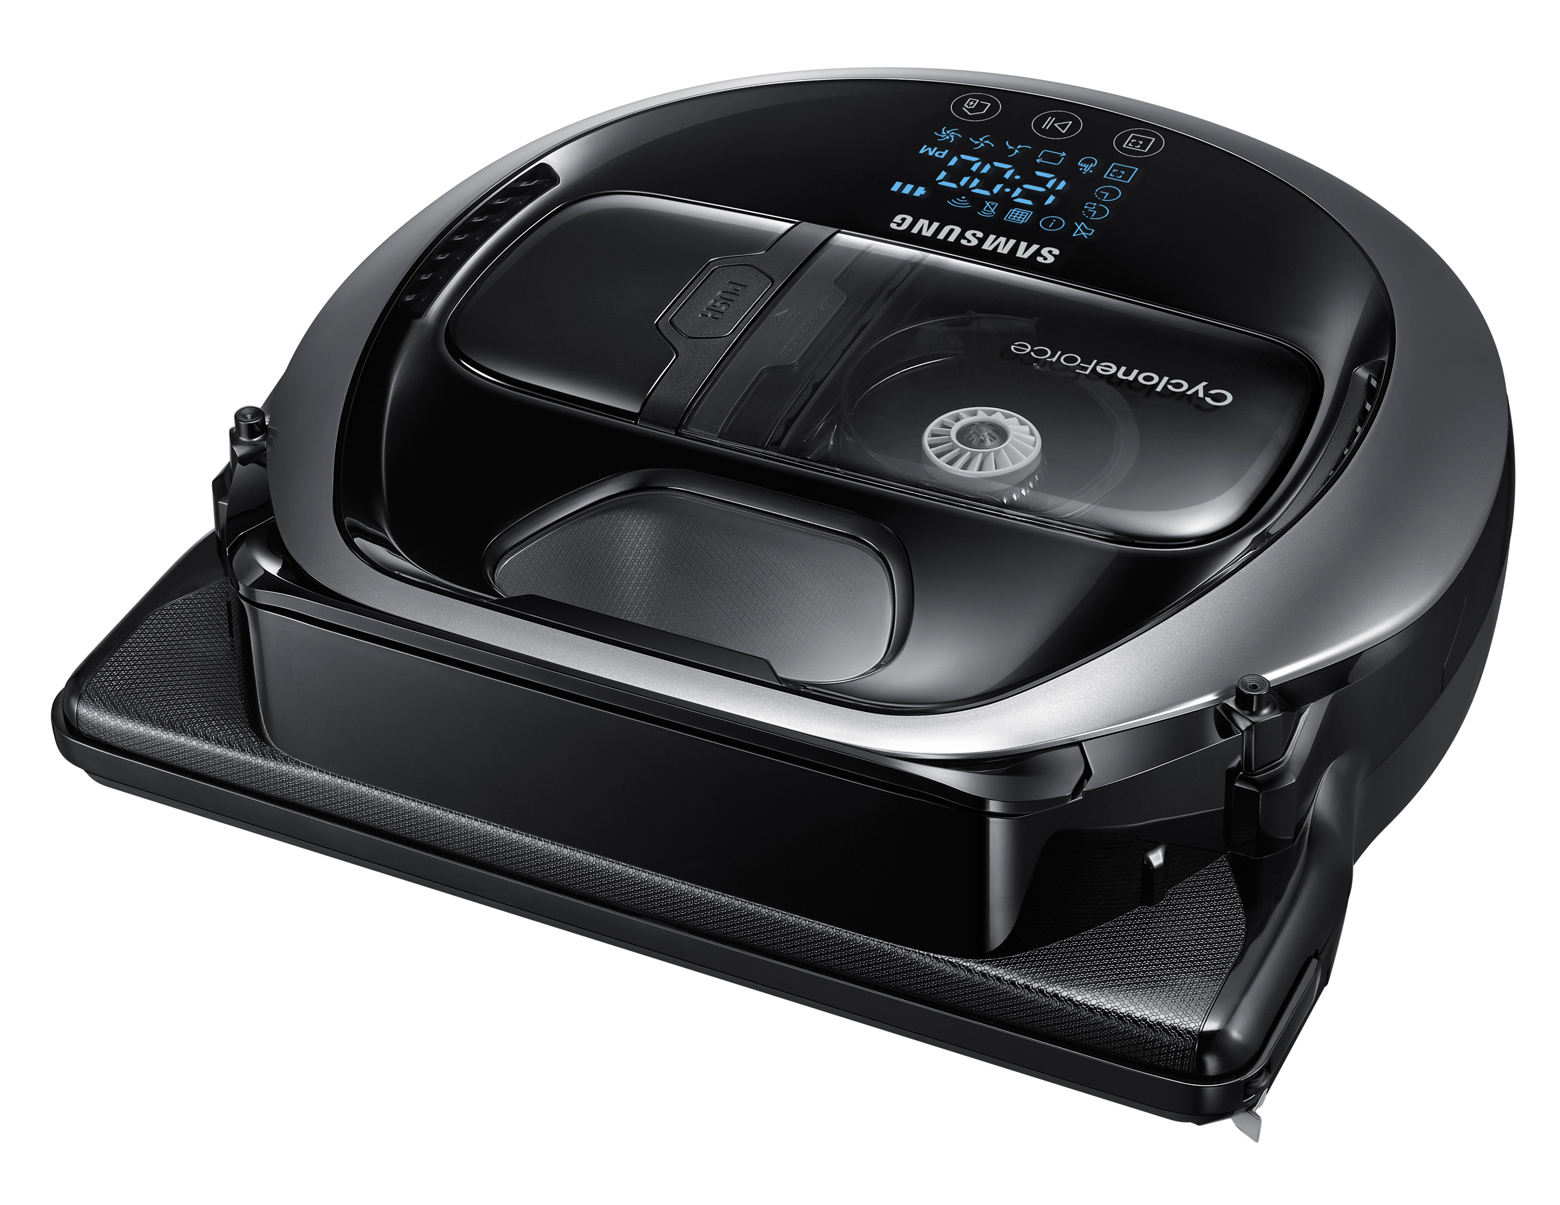 Samsung Introduces the POWERbot VR7000 Robot Vacuum at CES 2017